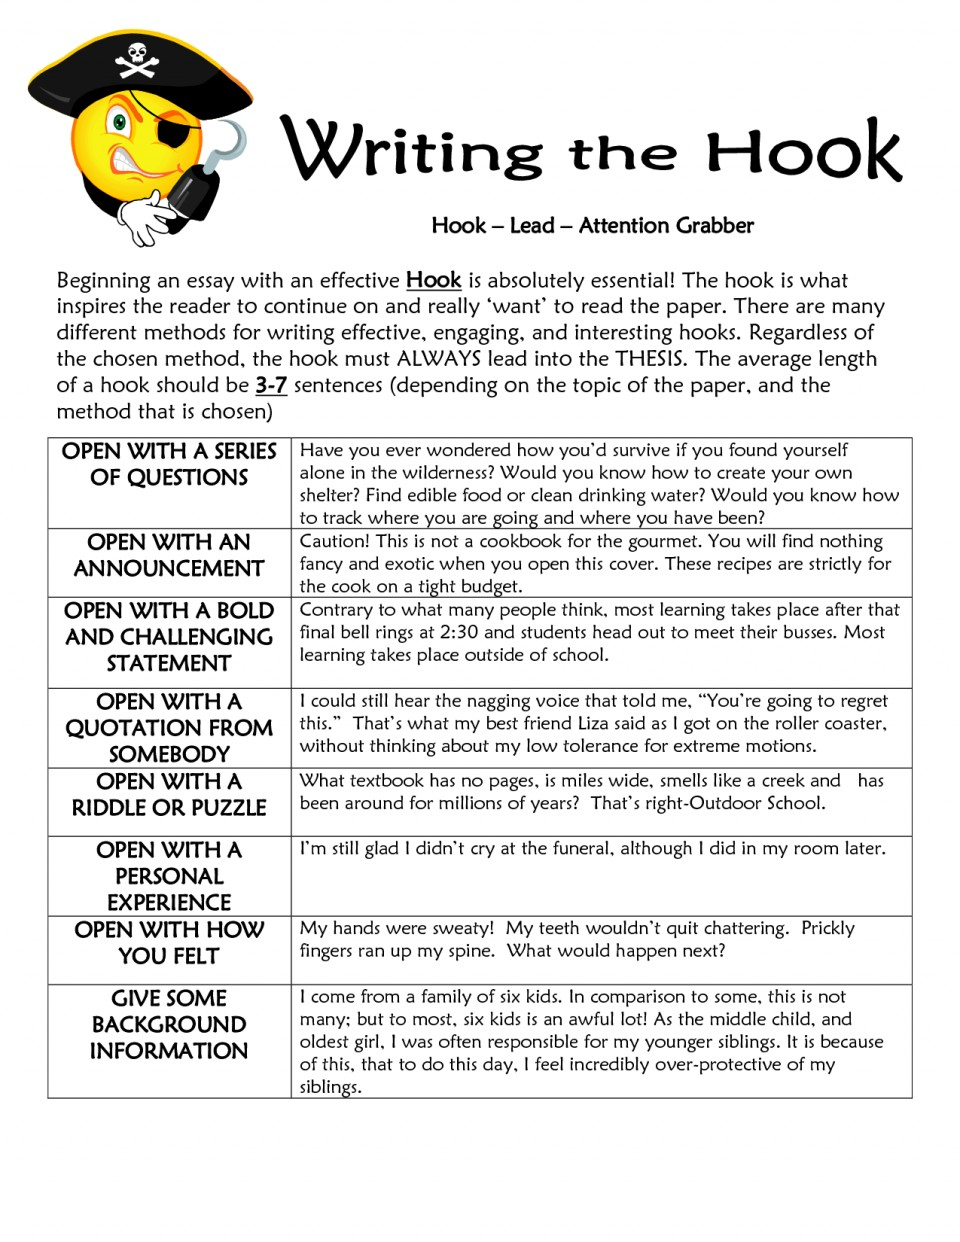 002 Essay Example Good Hooks For Essays Unforgettable About Culture Heroes 960